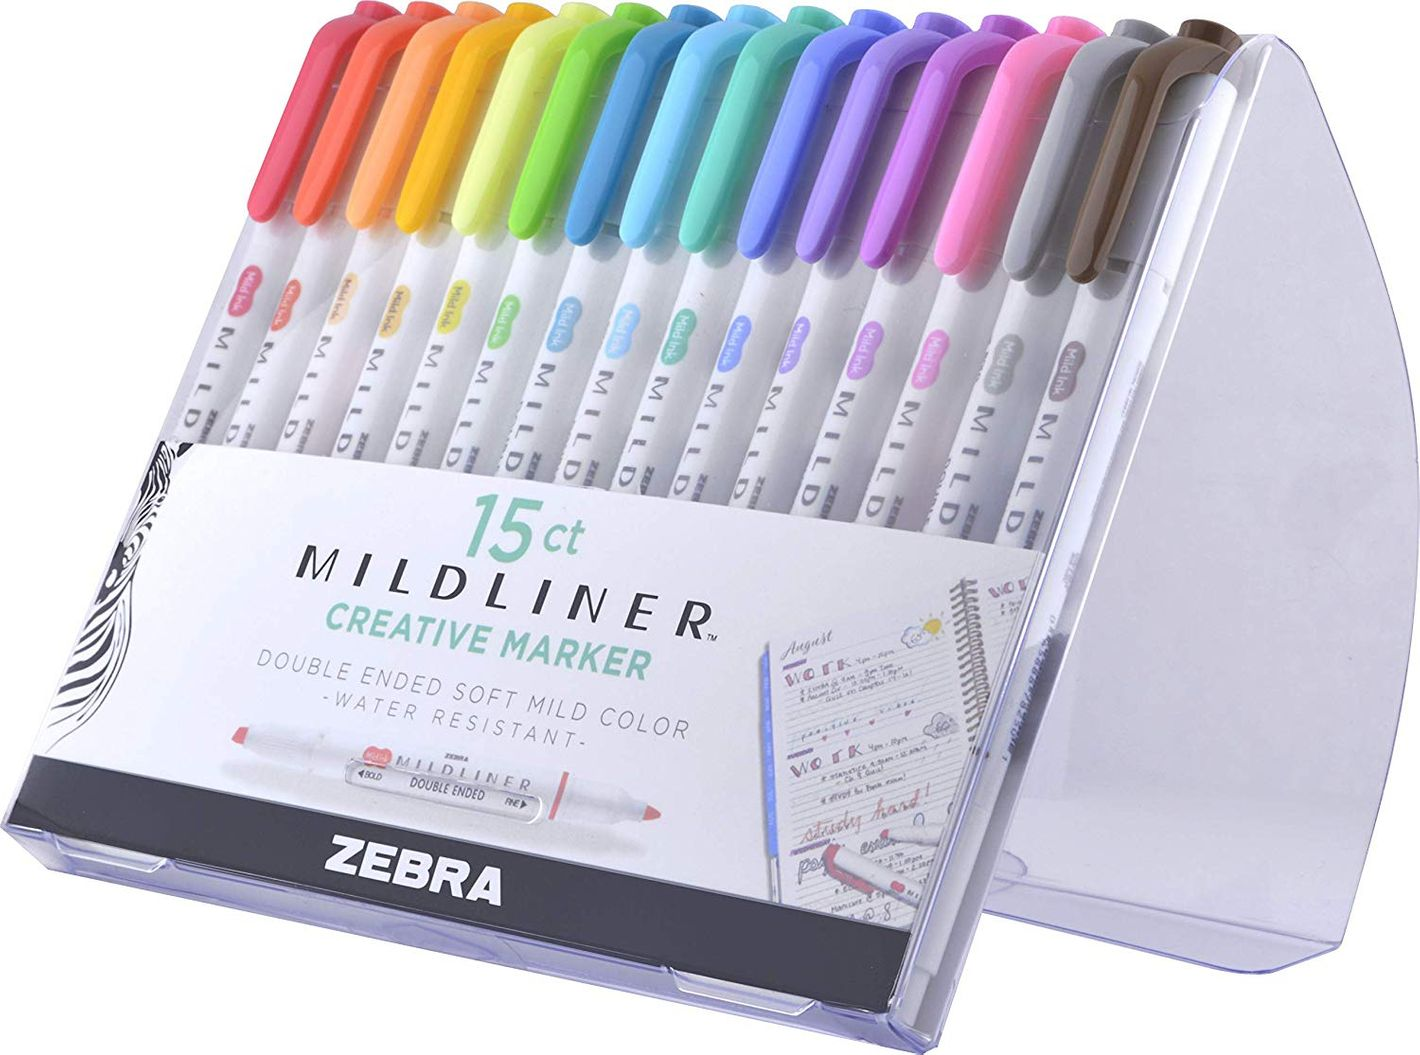 Zebra Pen Mildliner Double Ended Highlighter Set